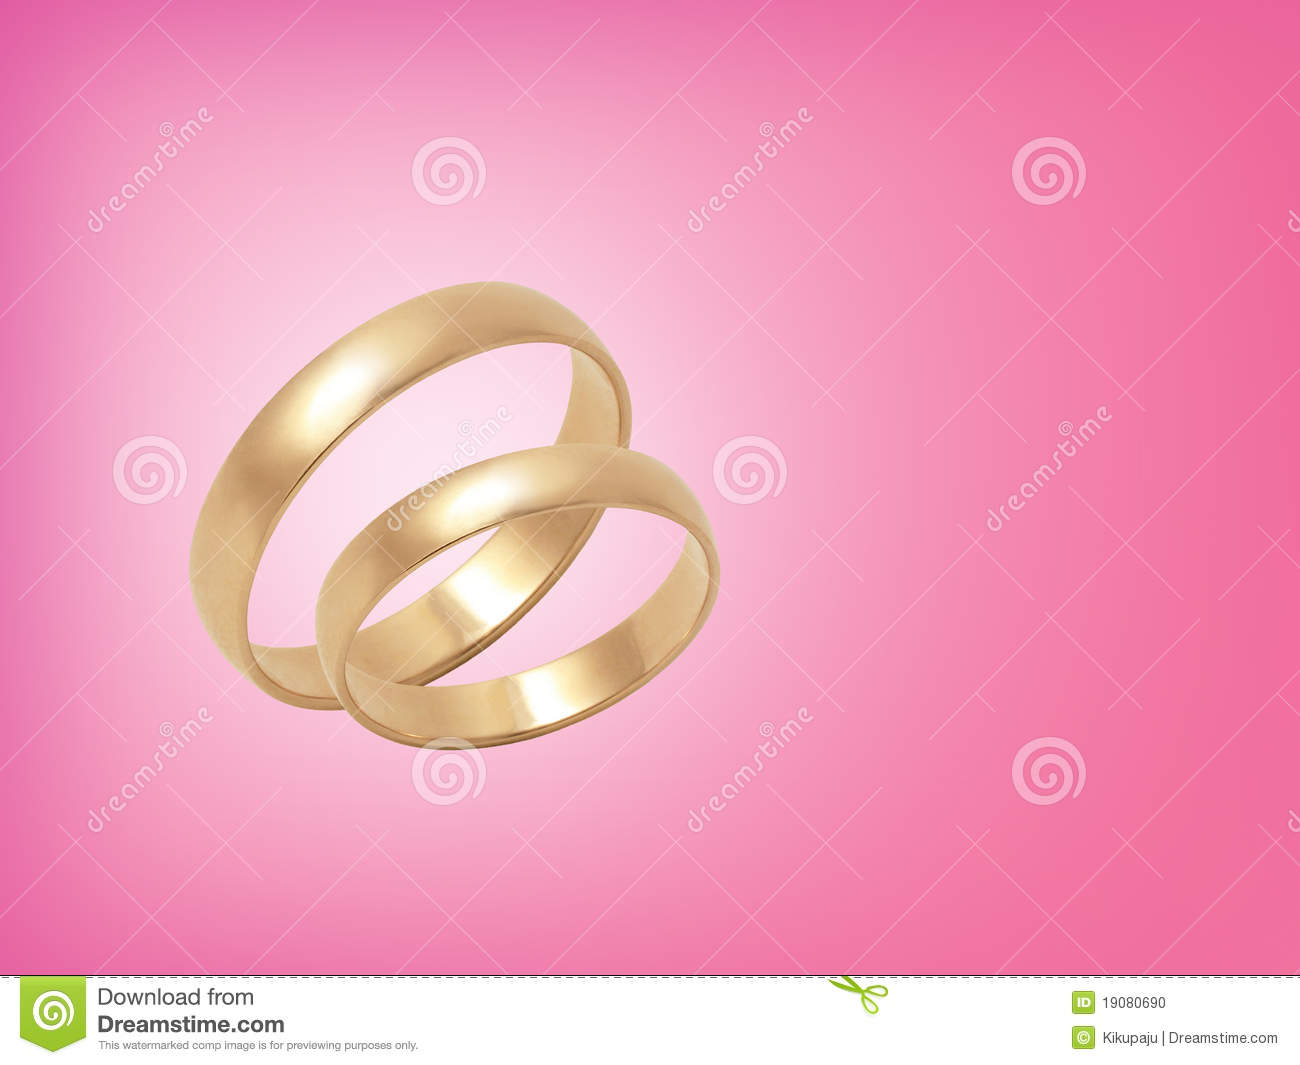 Wedding Rings On Pink Background Stock Photo - Image of orchid ...